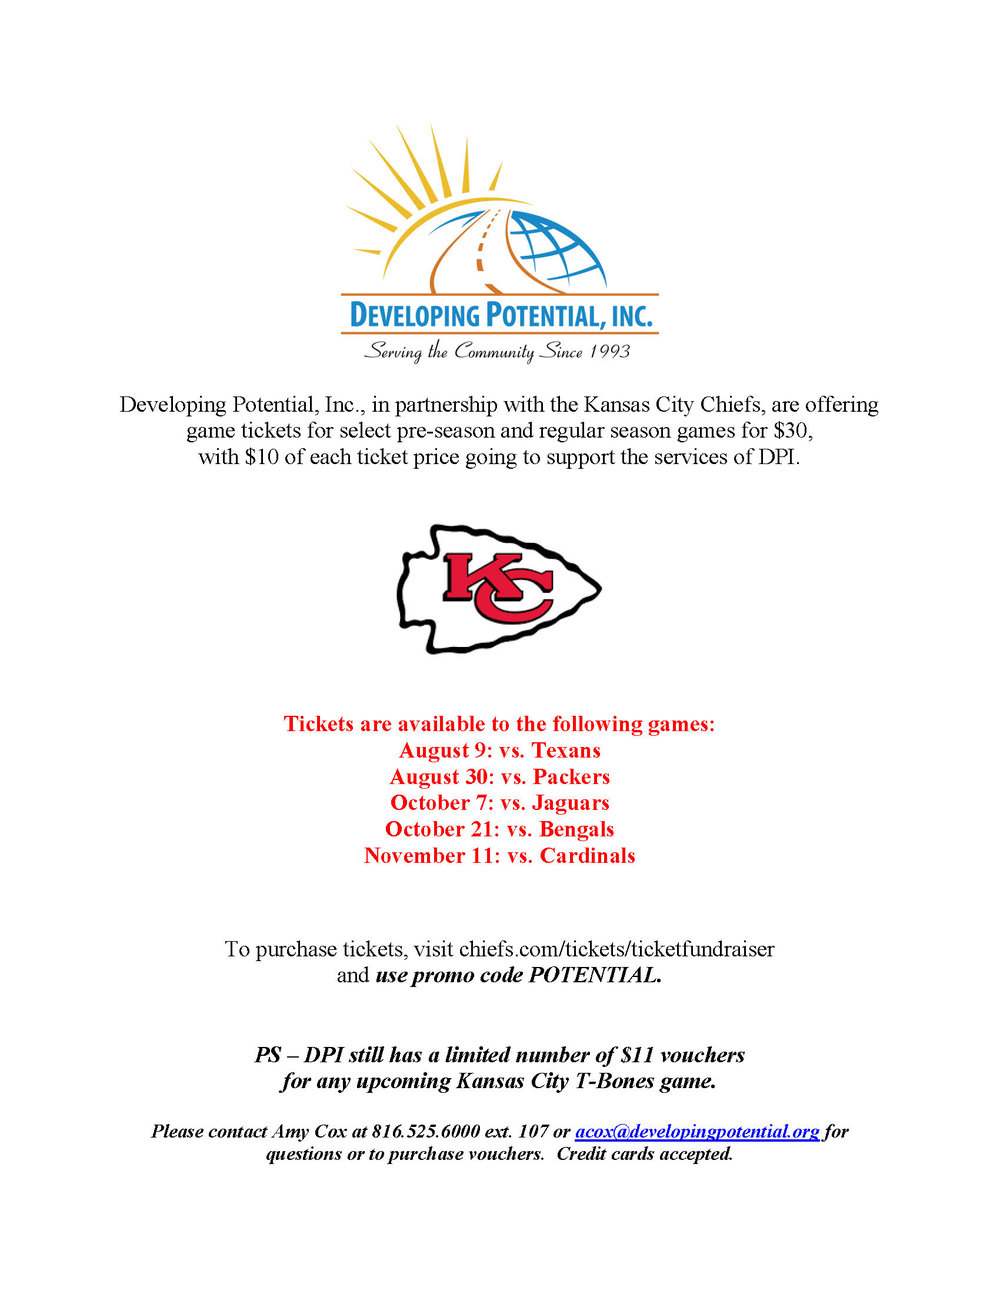 DPI KC Chiefs fundraiser flyer 2018.jpg